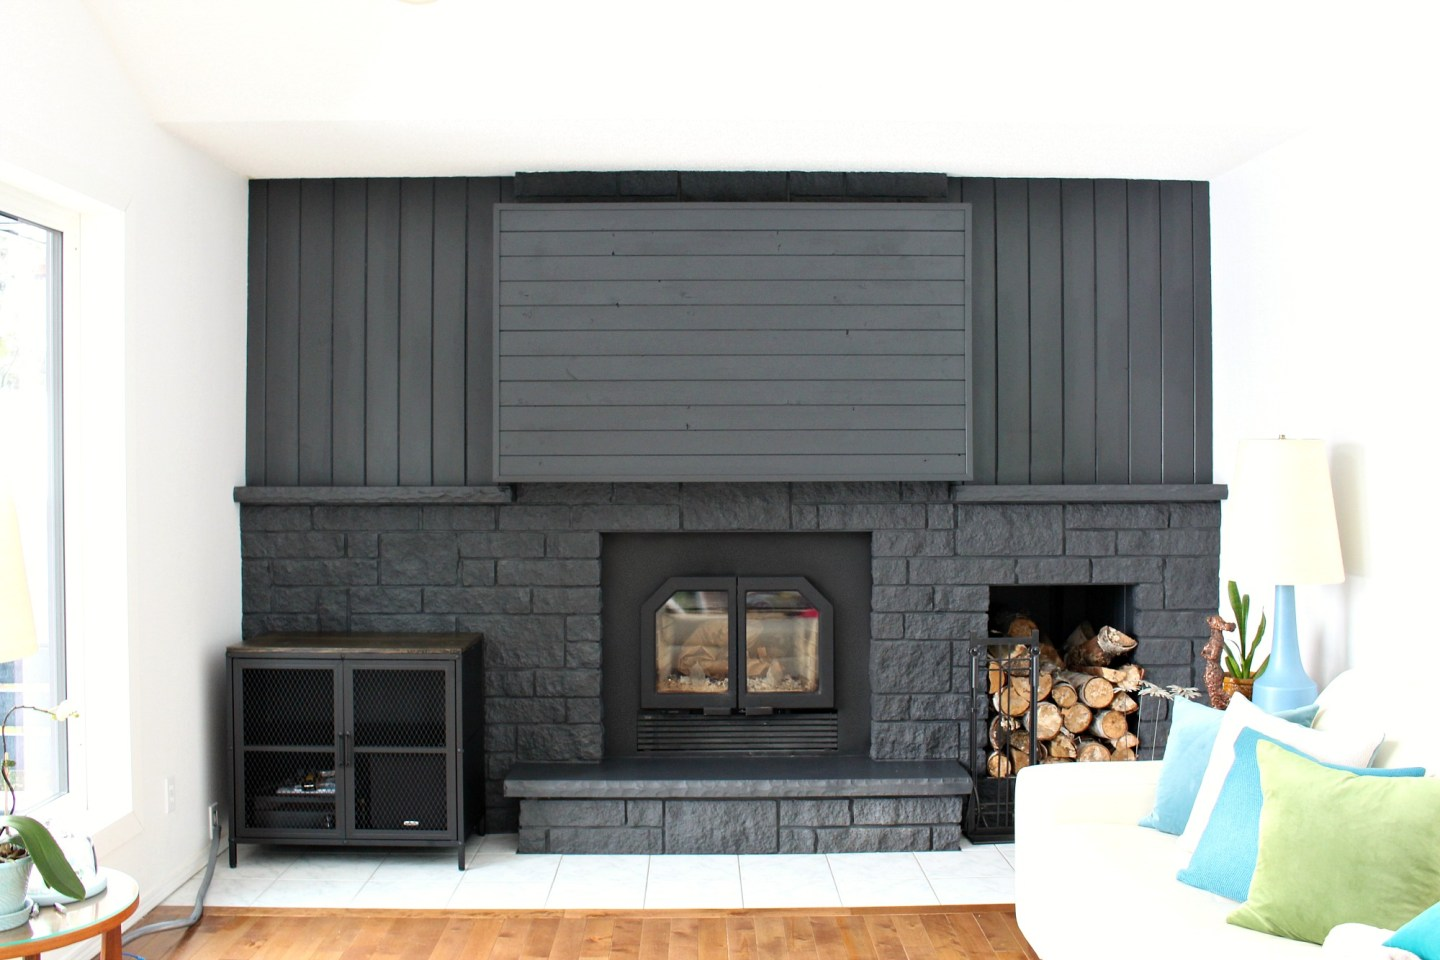 Fireplace Vents Get in the Way of TV